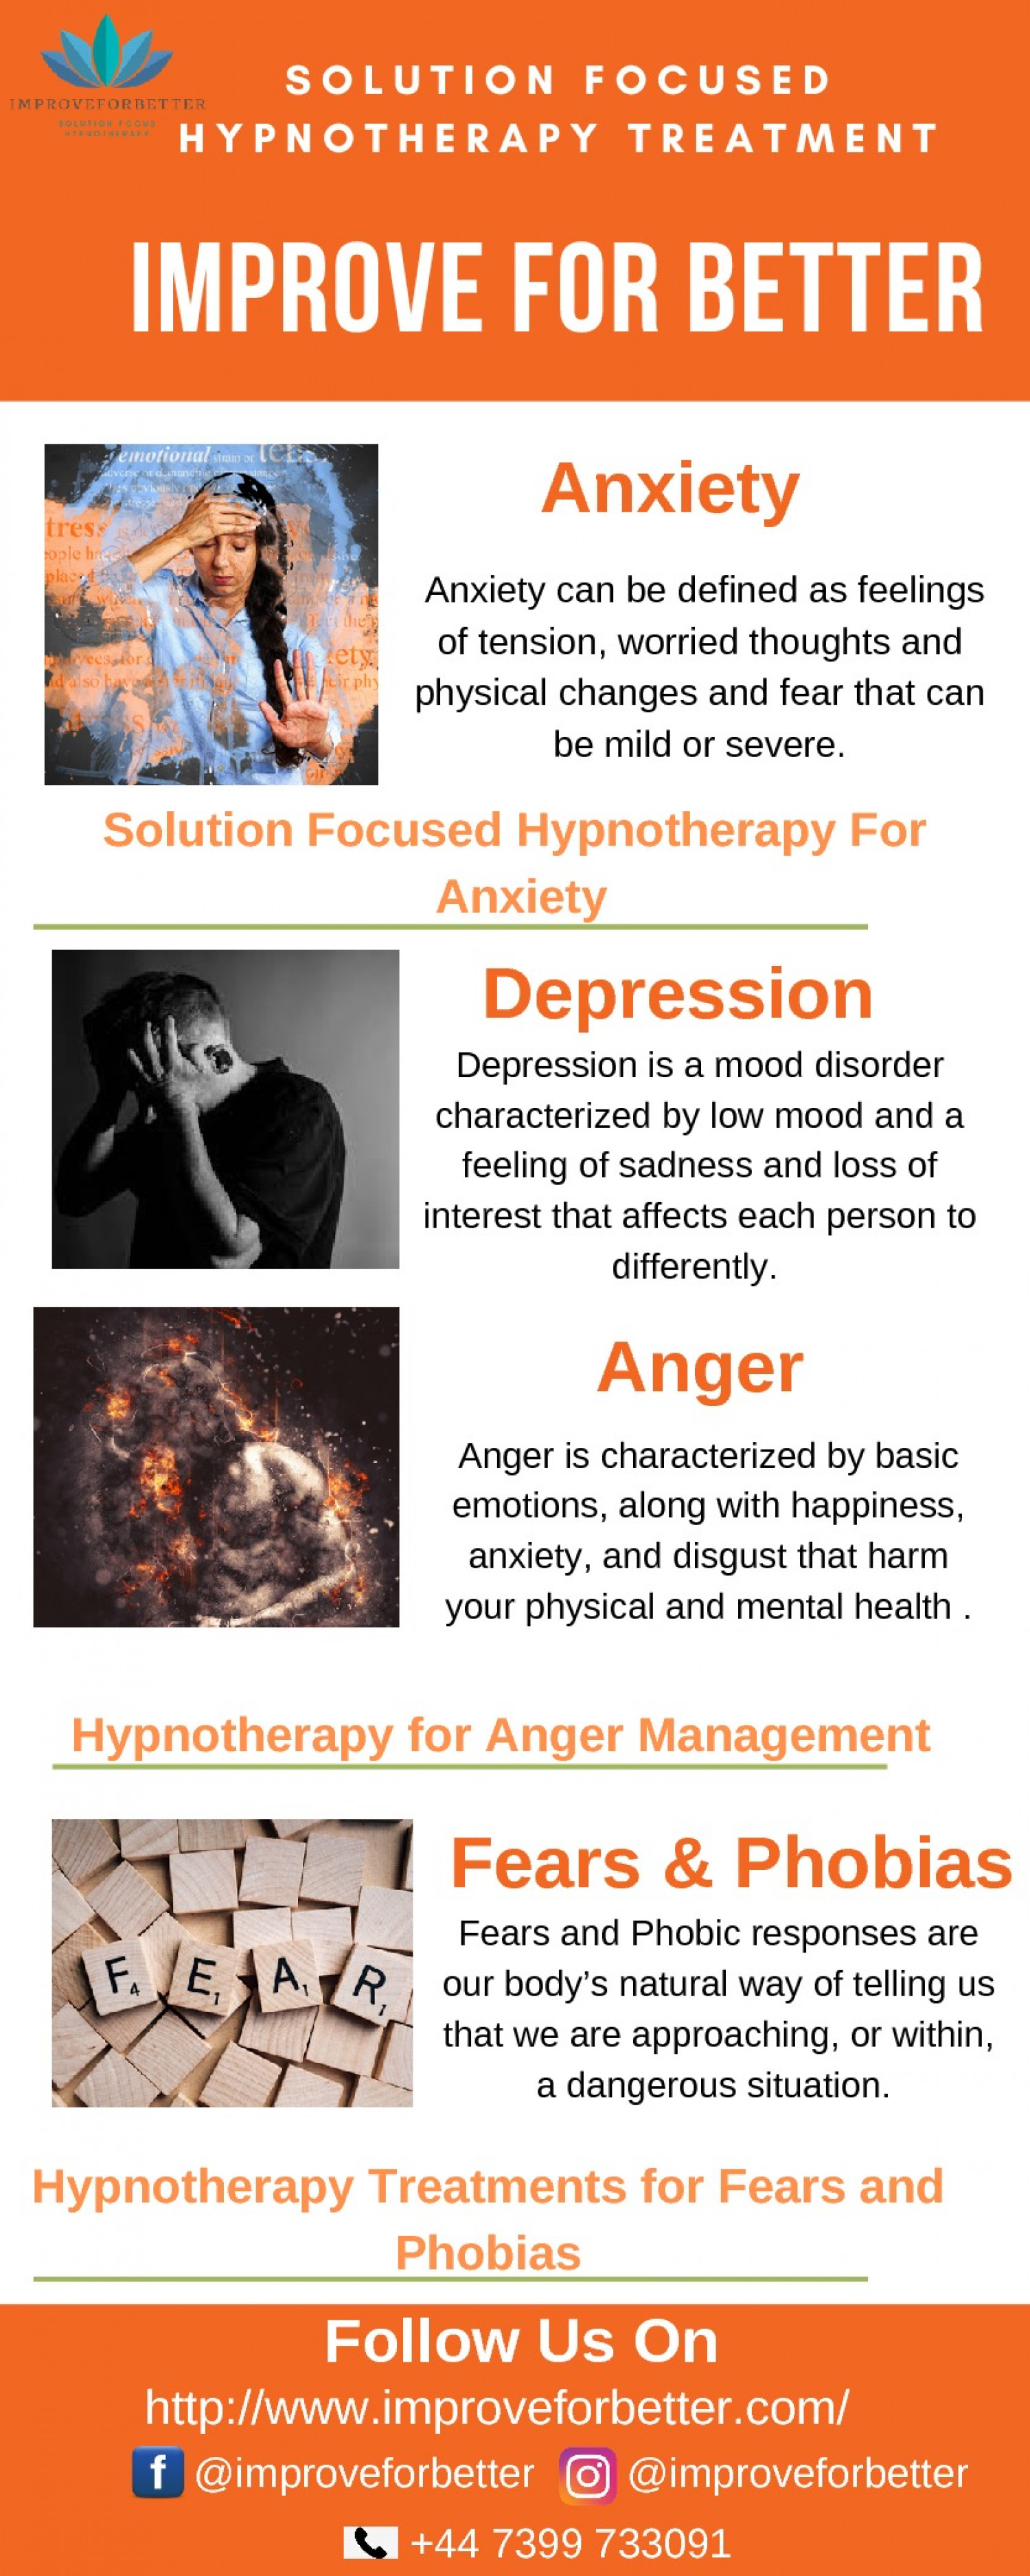 Hypnotherapy Treatments for Fears and Phobias - Improve For Better Infographic